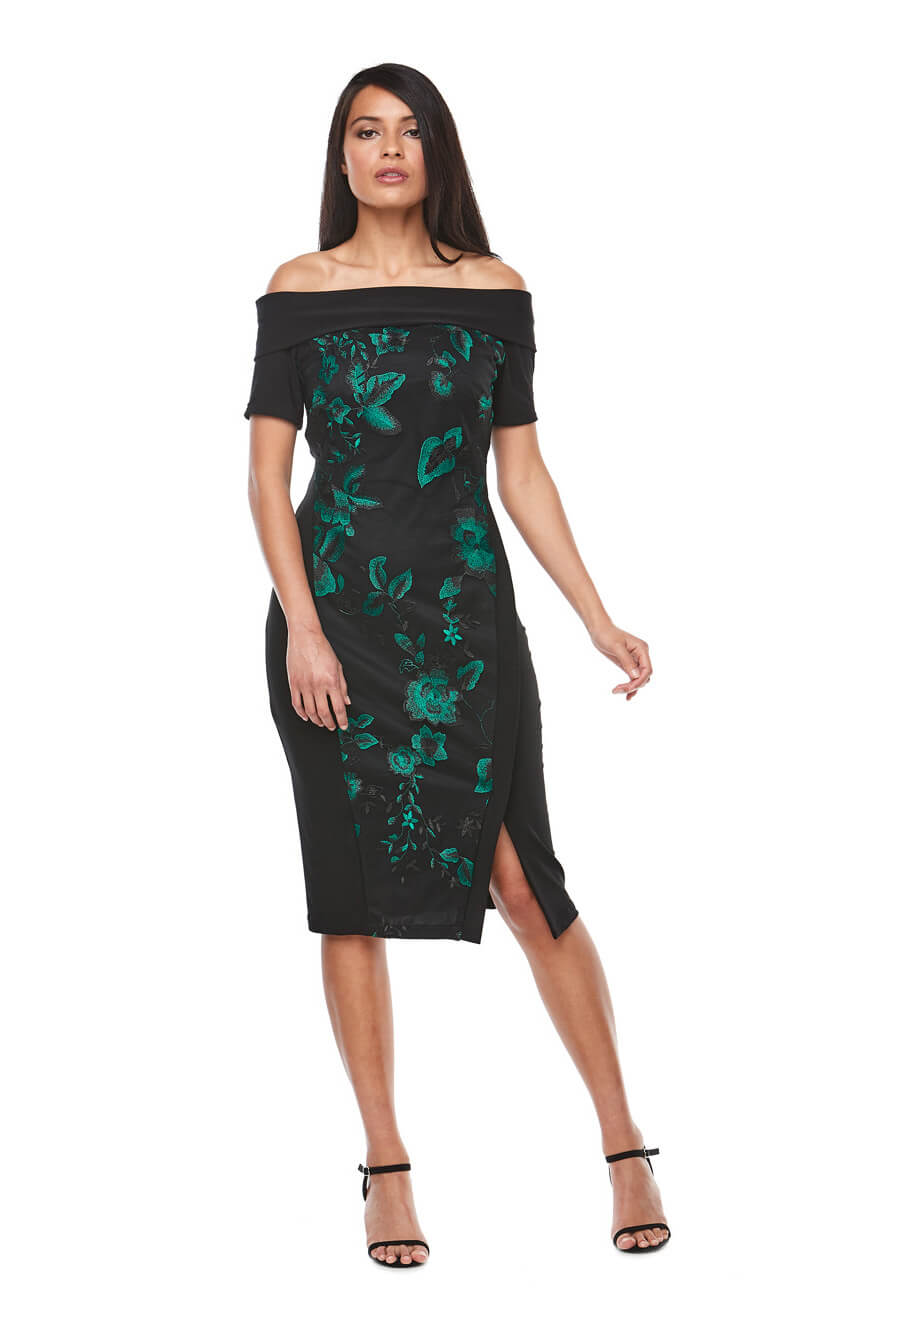 Mid length off the shoulder dress with side split and dark green embroidery